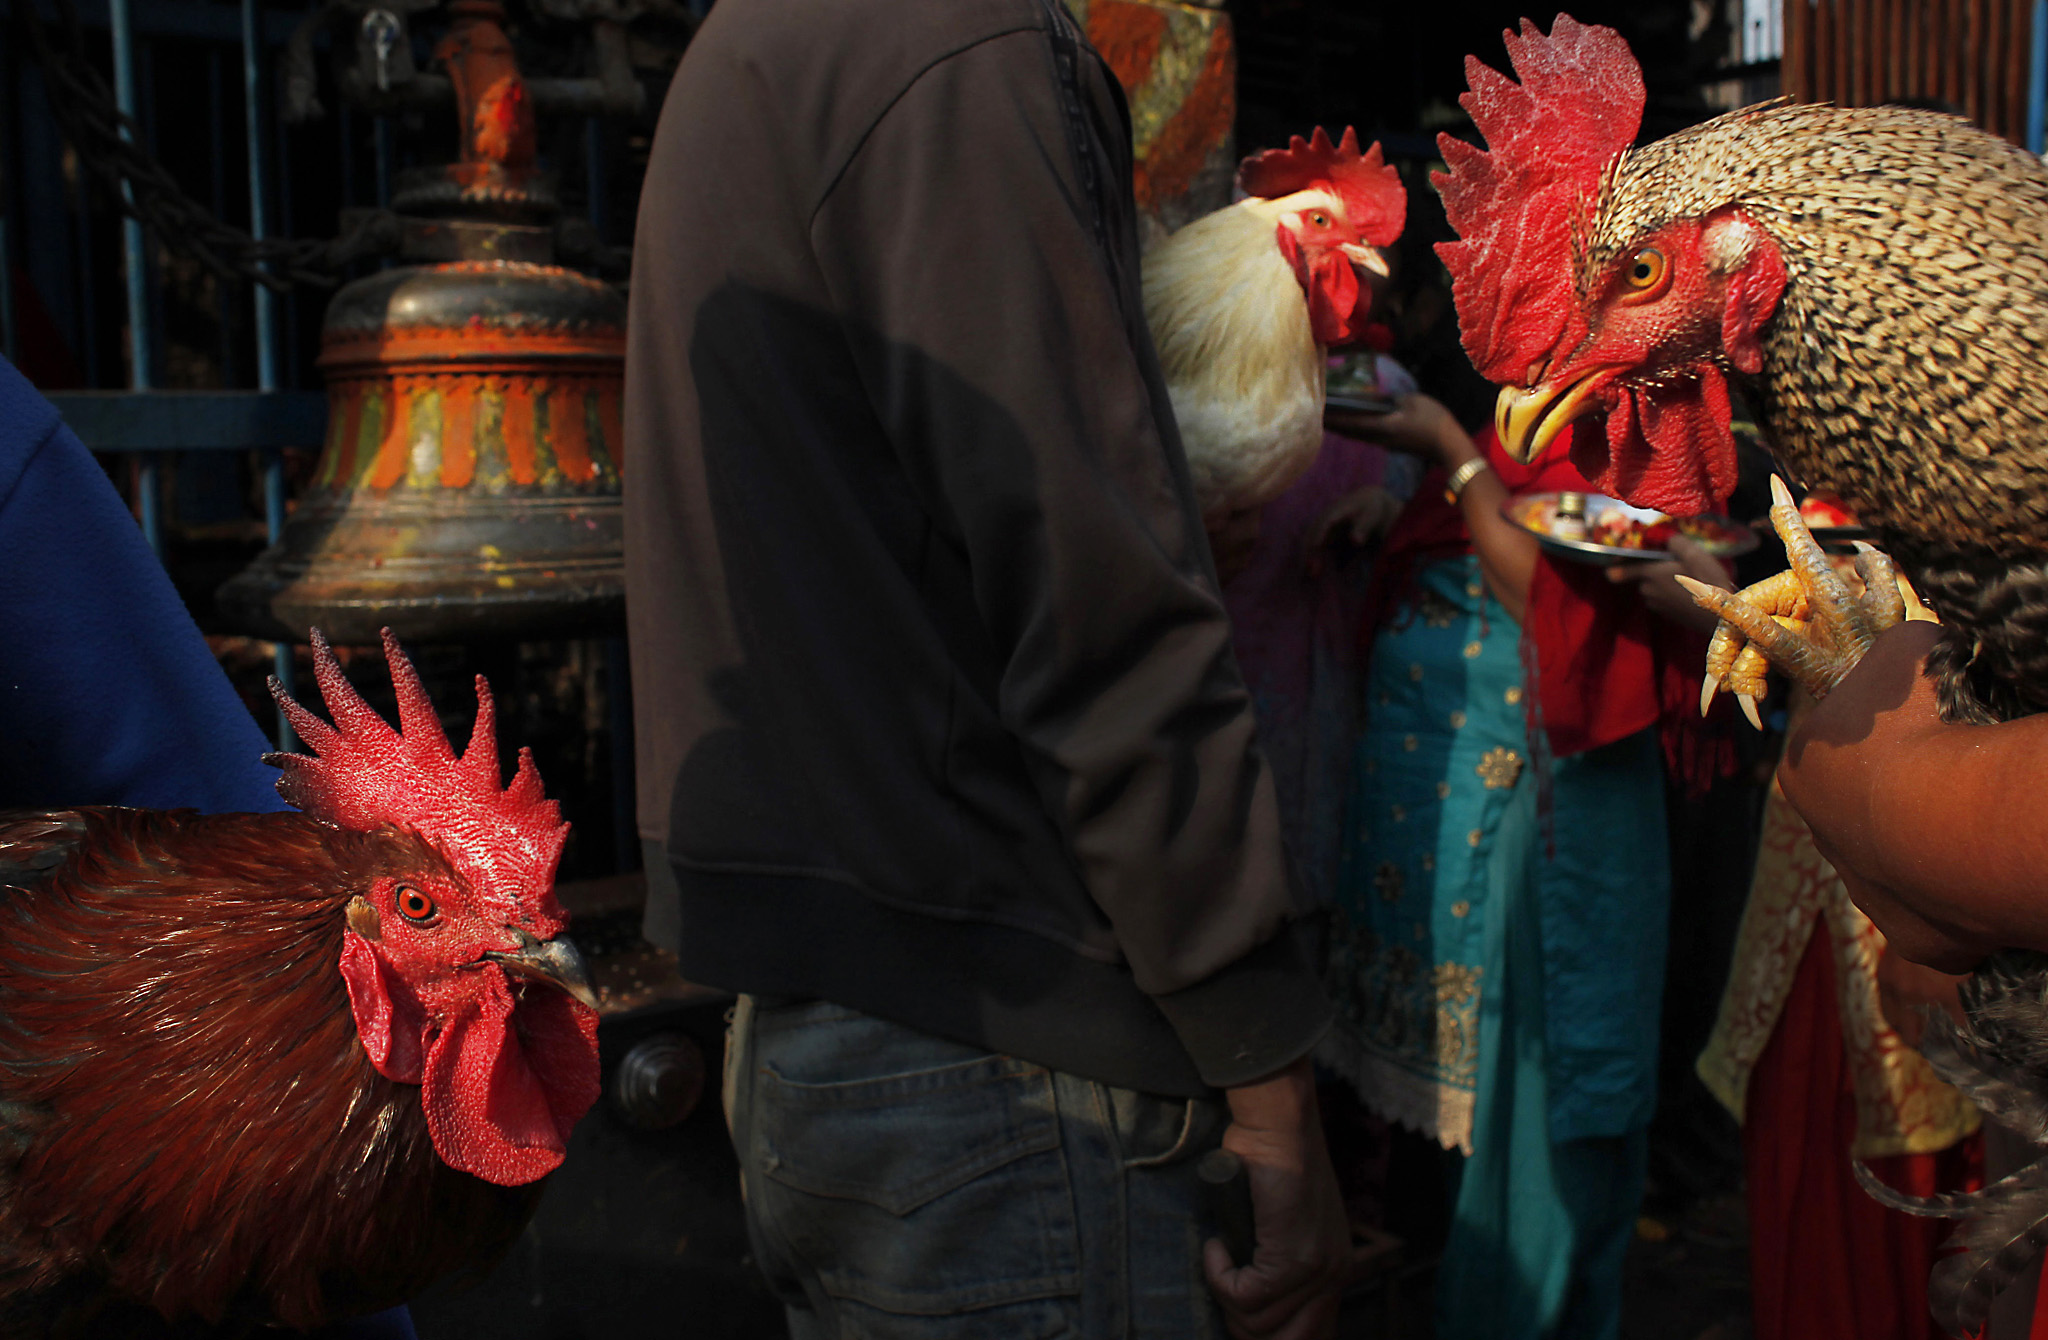 Nepalese devotees hold sacrificial chickens as they wait in a queue to enter the 'Balkumari' temple during Sindoor Jatra festival in Bhaktapur, Nepal, Thursday, April 14, 2016. Devotees mark the festival by playing traditional drums, singing, dancing and carrying chariot of various deities around town while throwing vermillion powder to welcome the advent of spring and the New Year. (AP Photo/Niranjan Shrestha)